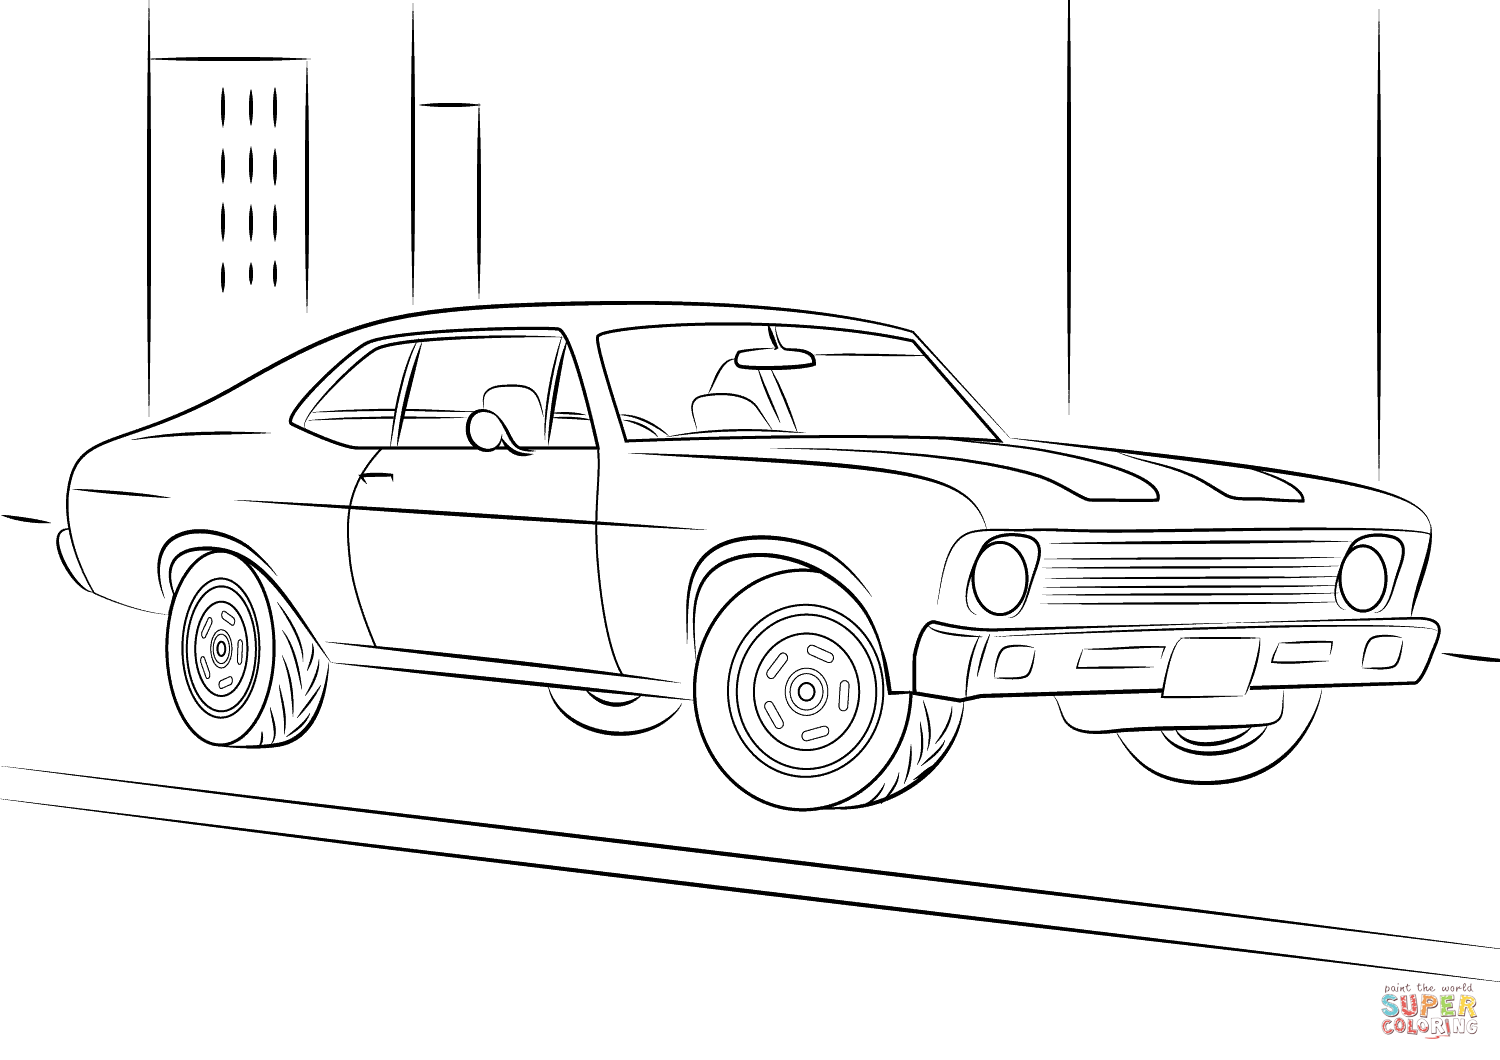 Chevrolet Chevy Ii Nova Coloring Page